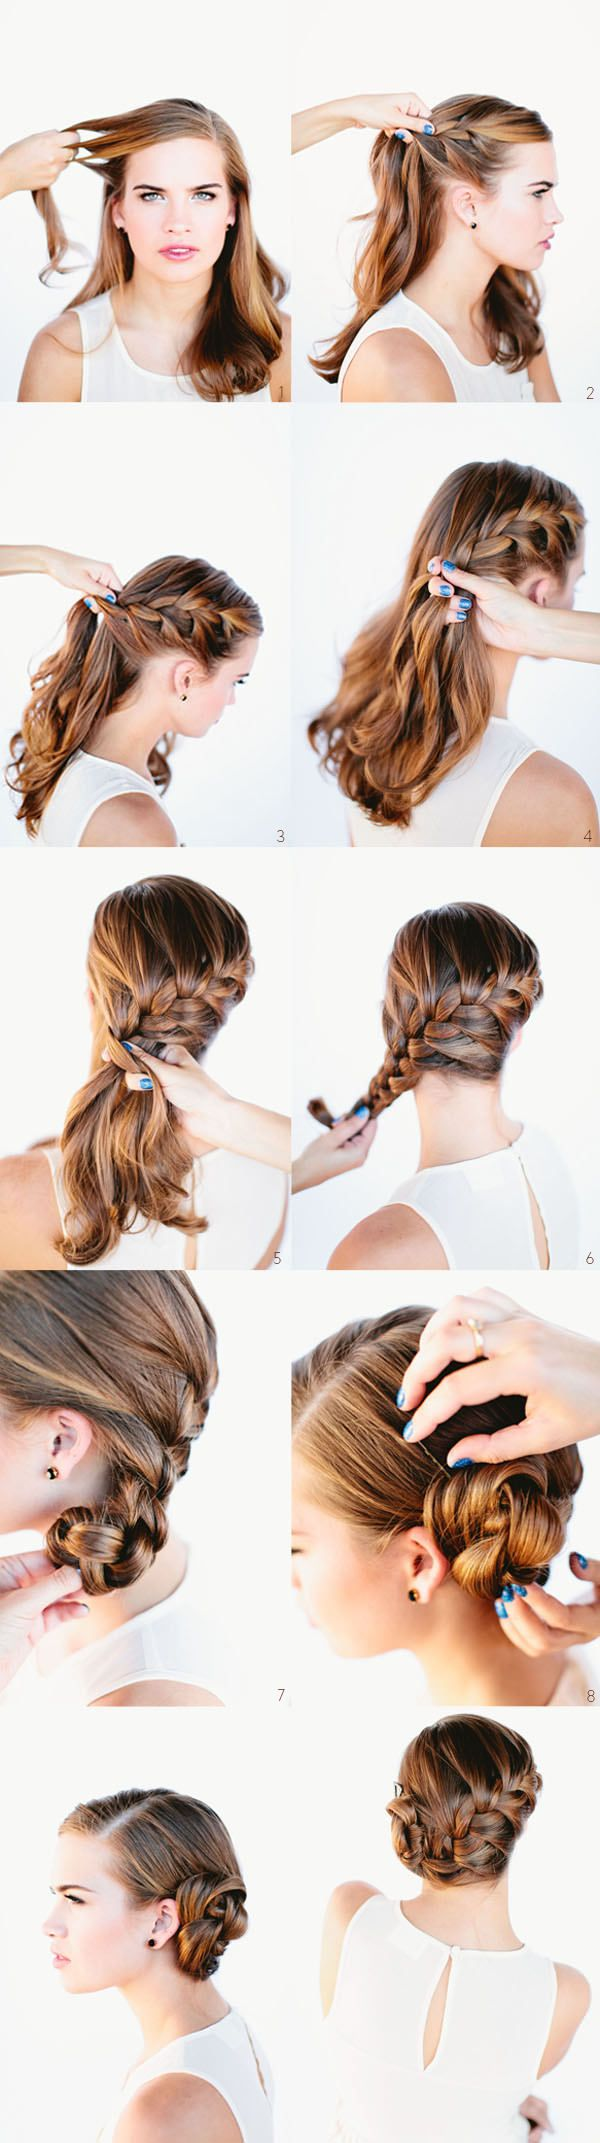 415 best Hair Styles I Adore images on Pinterest | Cute hairstyles ...